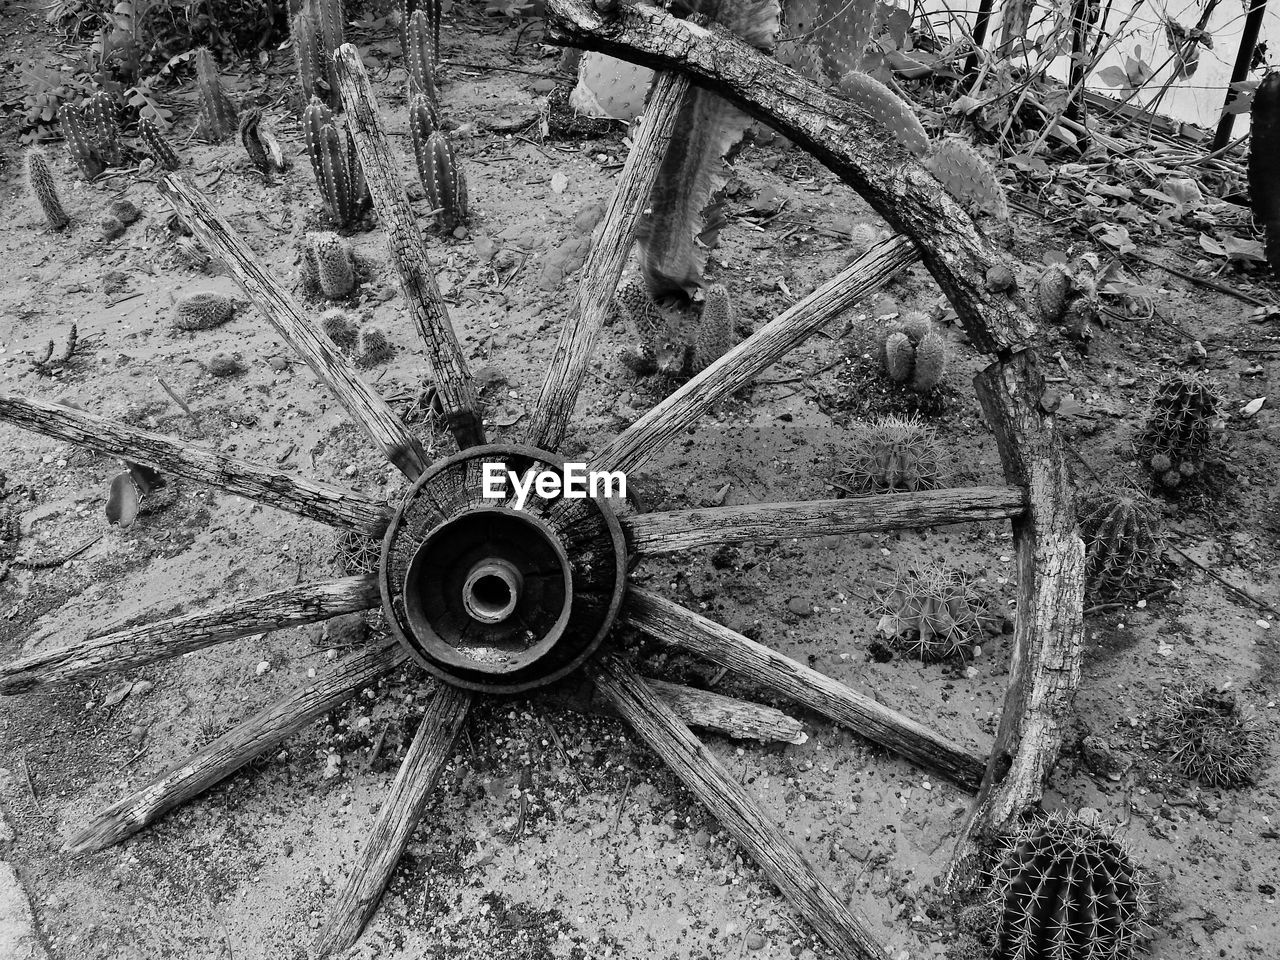 wheel, wagon wheel, transportation, spoke, mode of transport, old-fashioned, no people, day, tire, close-up, gear, outdoors